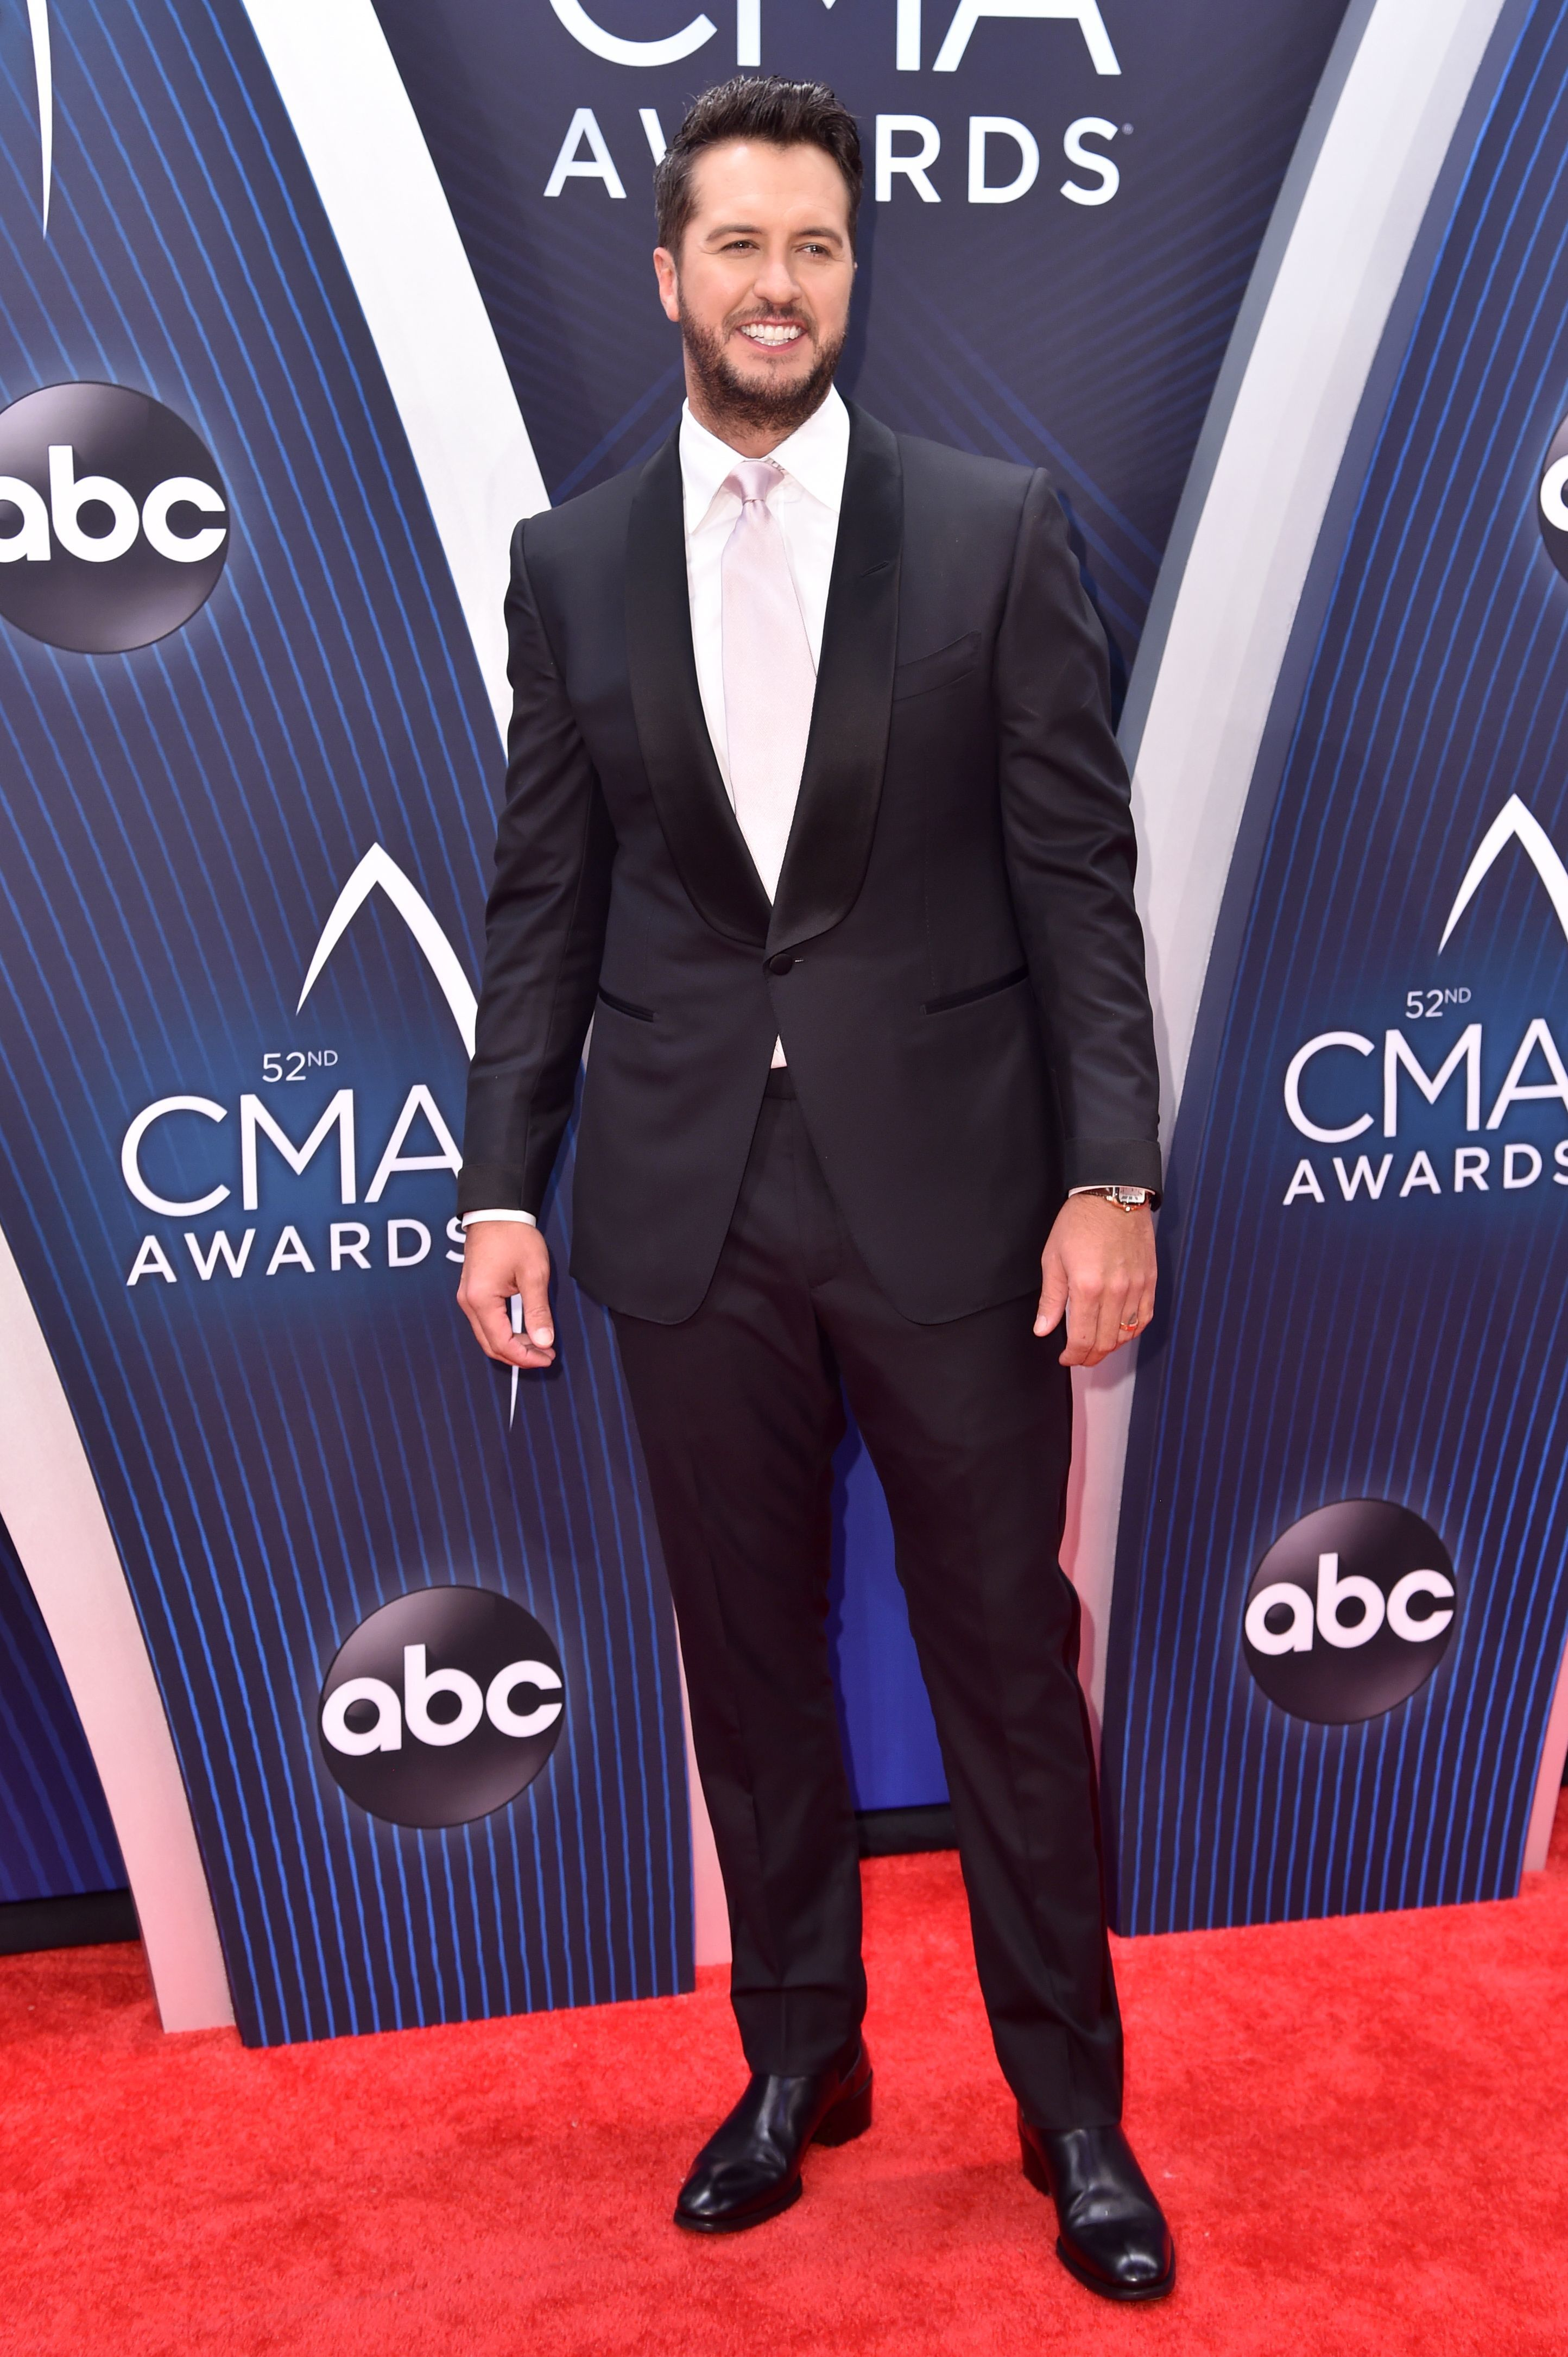 Luke Bryan attends the 52nd Annual CMA Awards in Nashville, Tennessee, on Nov. 14, 2018.